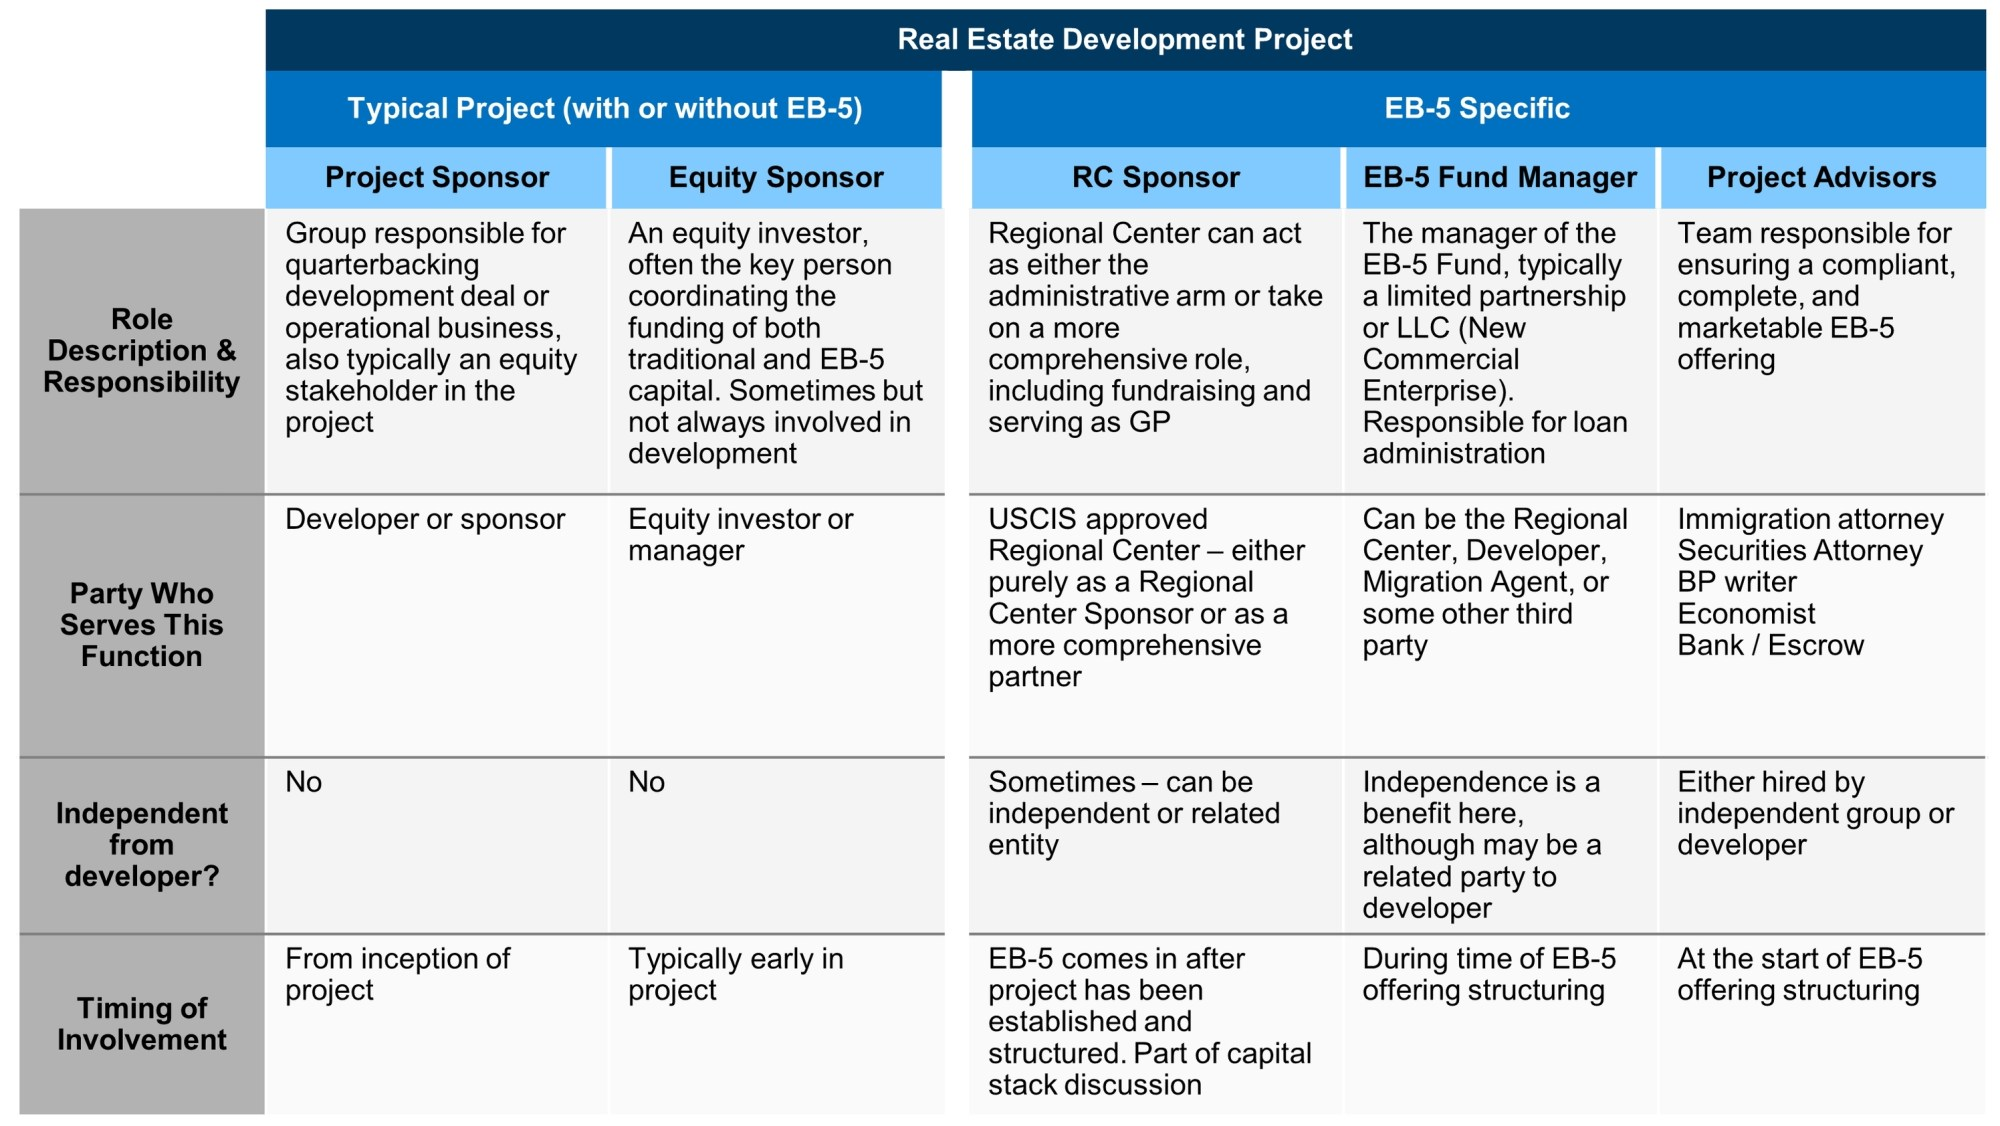 hight resolution of  in an eb 5 deal the roles they play their relationship to the project and the project sponsor and the timing of their involvement in the process